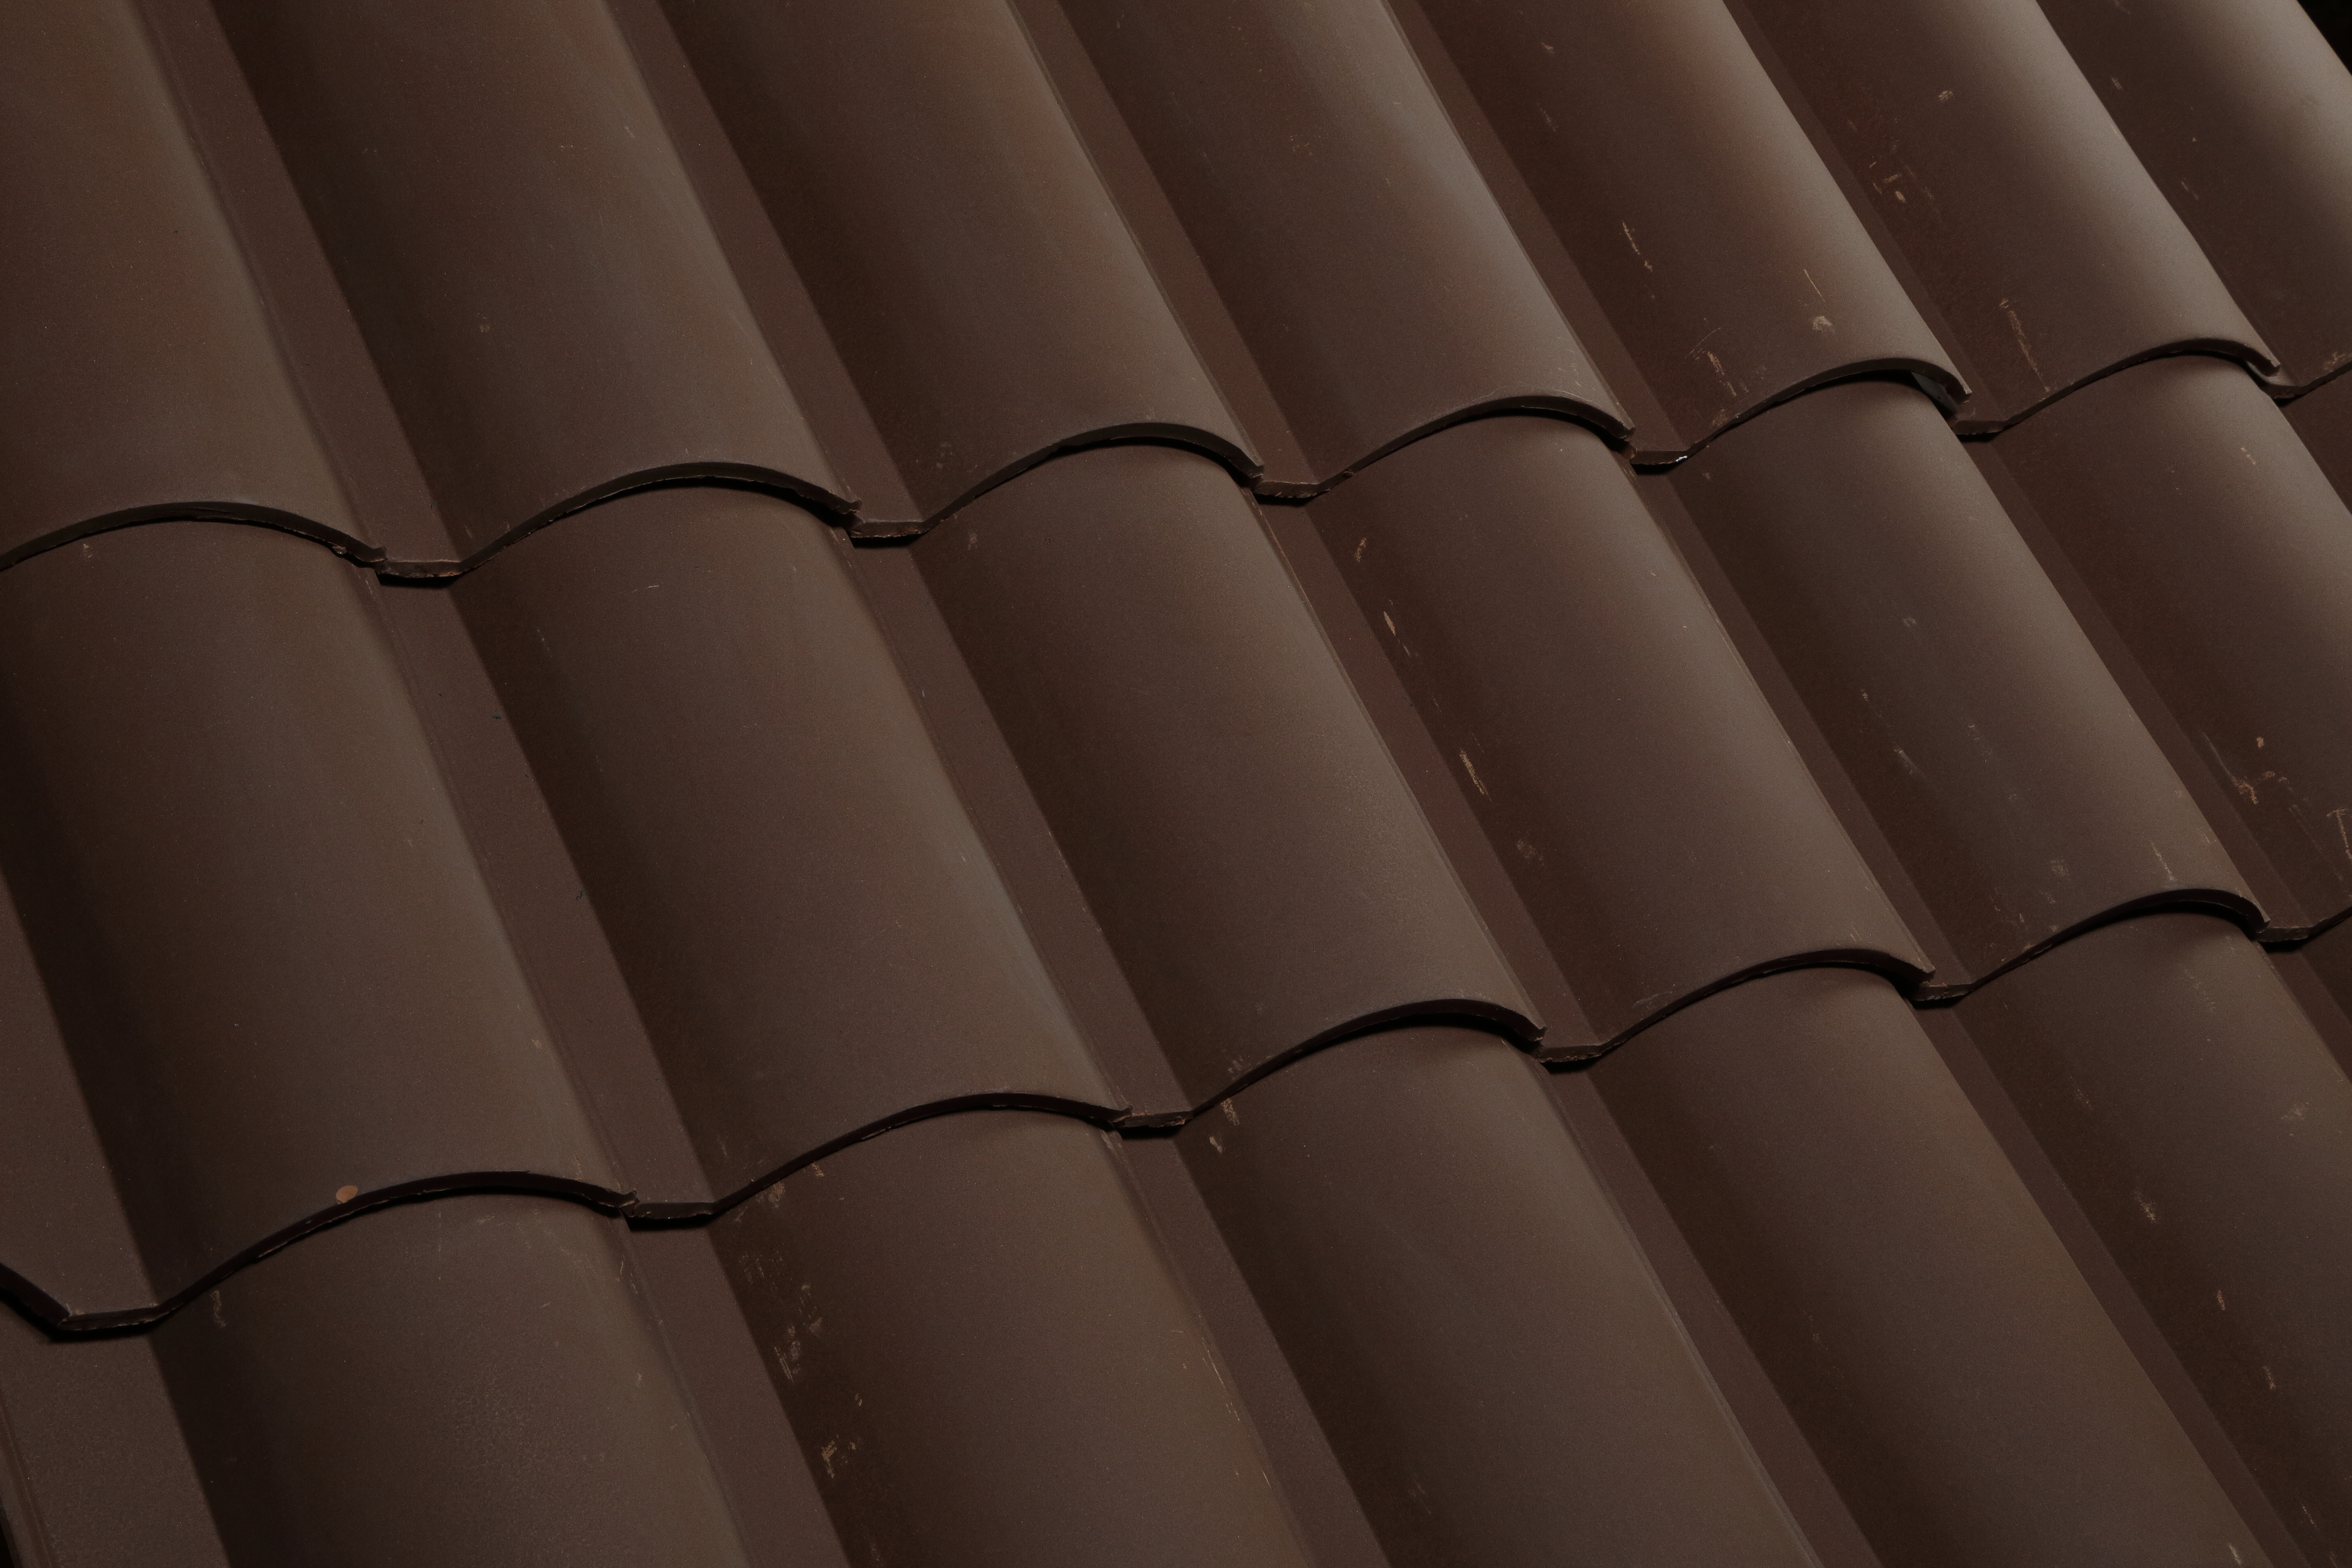 Clay tiles for roof here at Claymex.